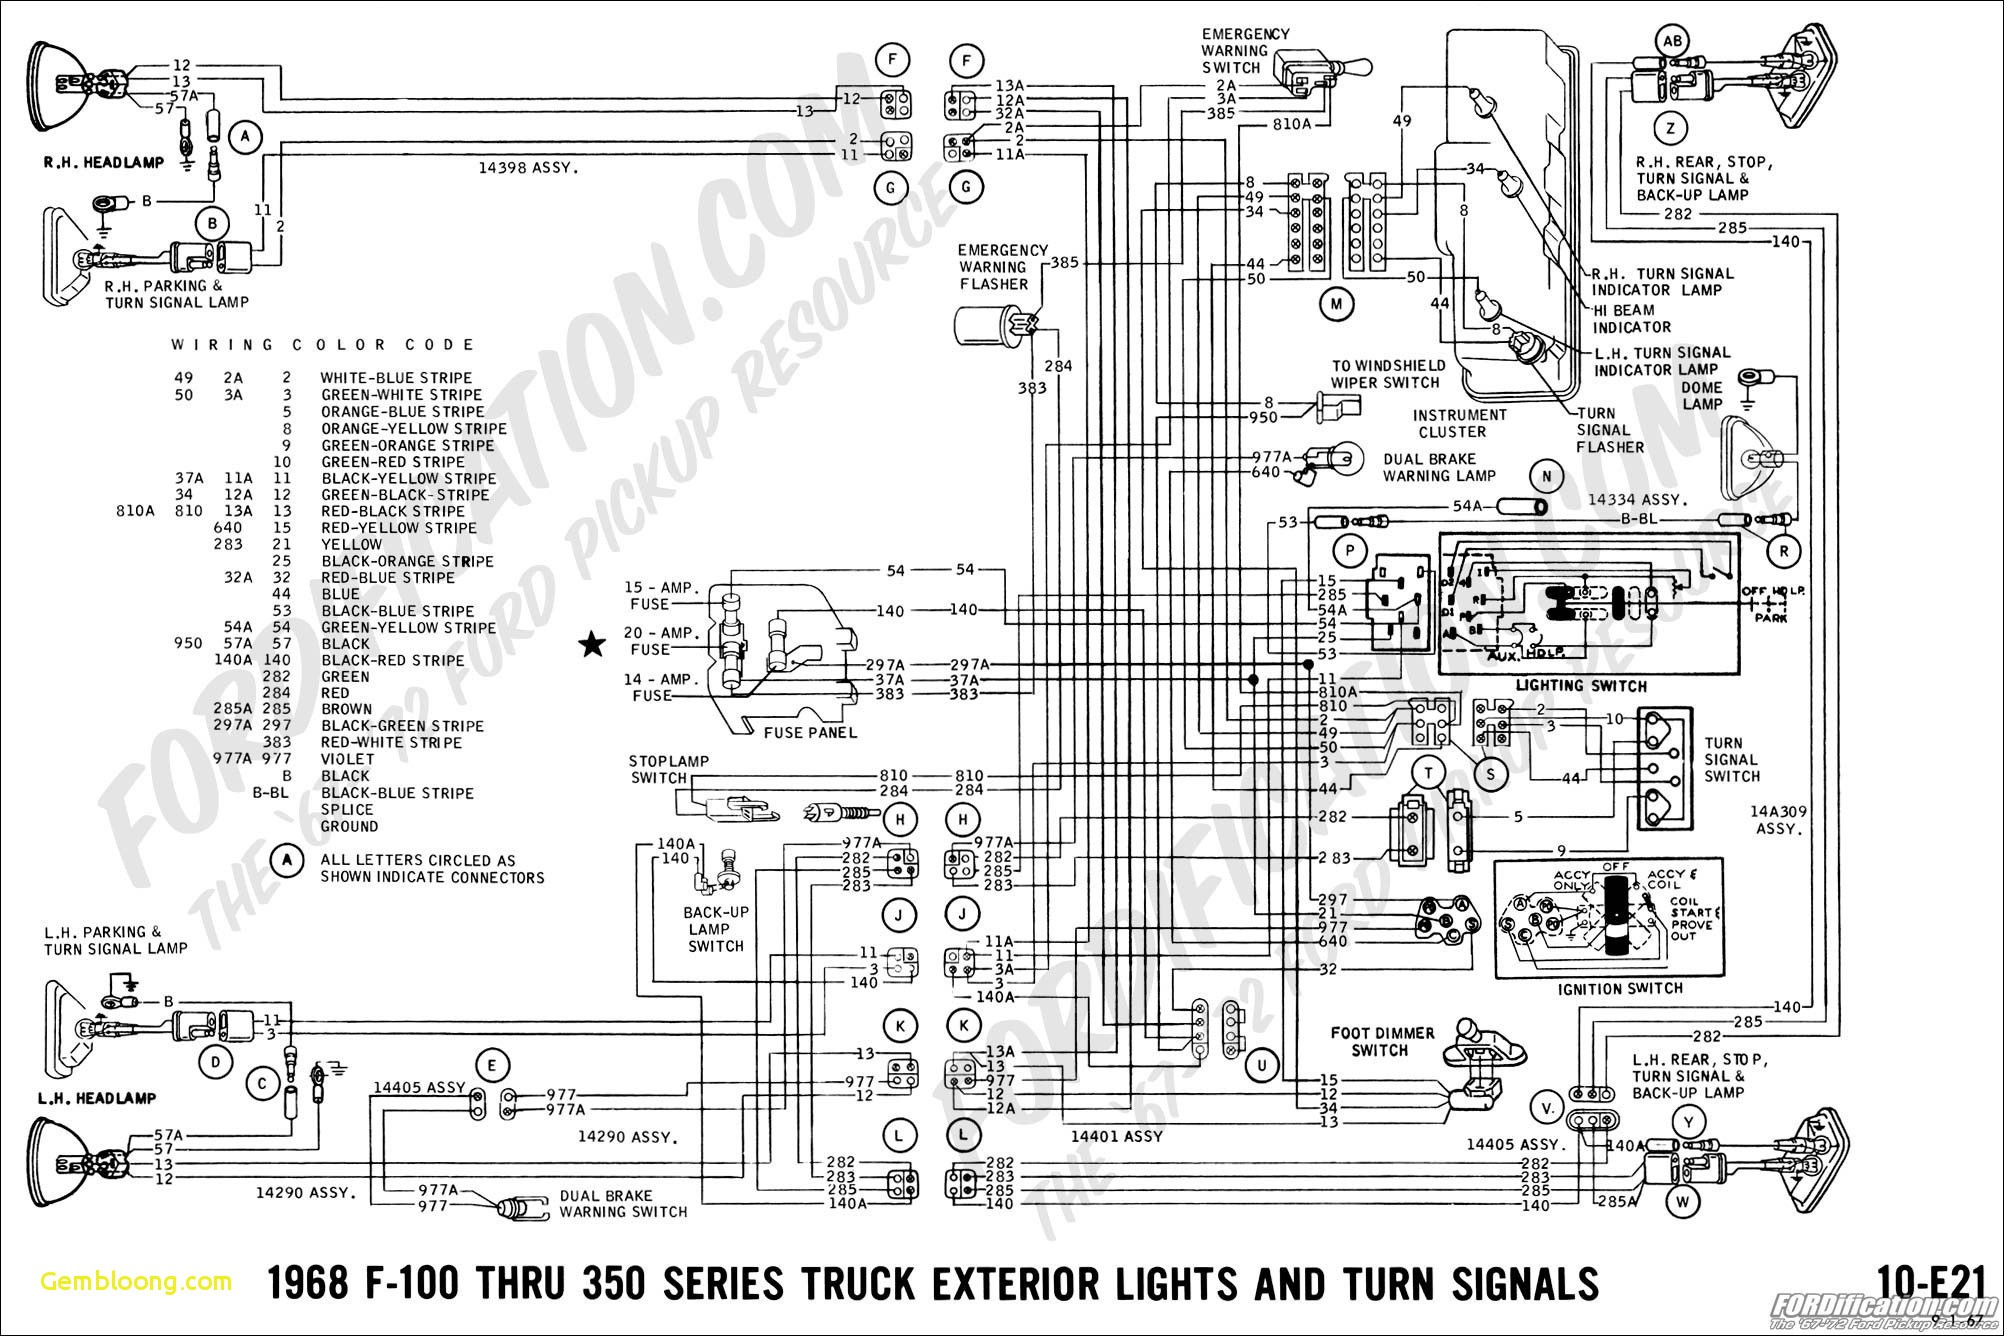 1996 ford F250 Tail Light Wiring Diagram 1978 ford F250 Wiring Diagram Schema Wiring Diagram Of 1996 ford F250 Tail Light Wiring Diagram 7 3l Wiring Schematic Printable Very Handy Diesel forum